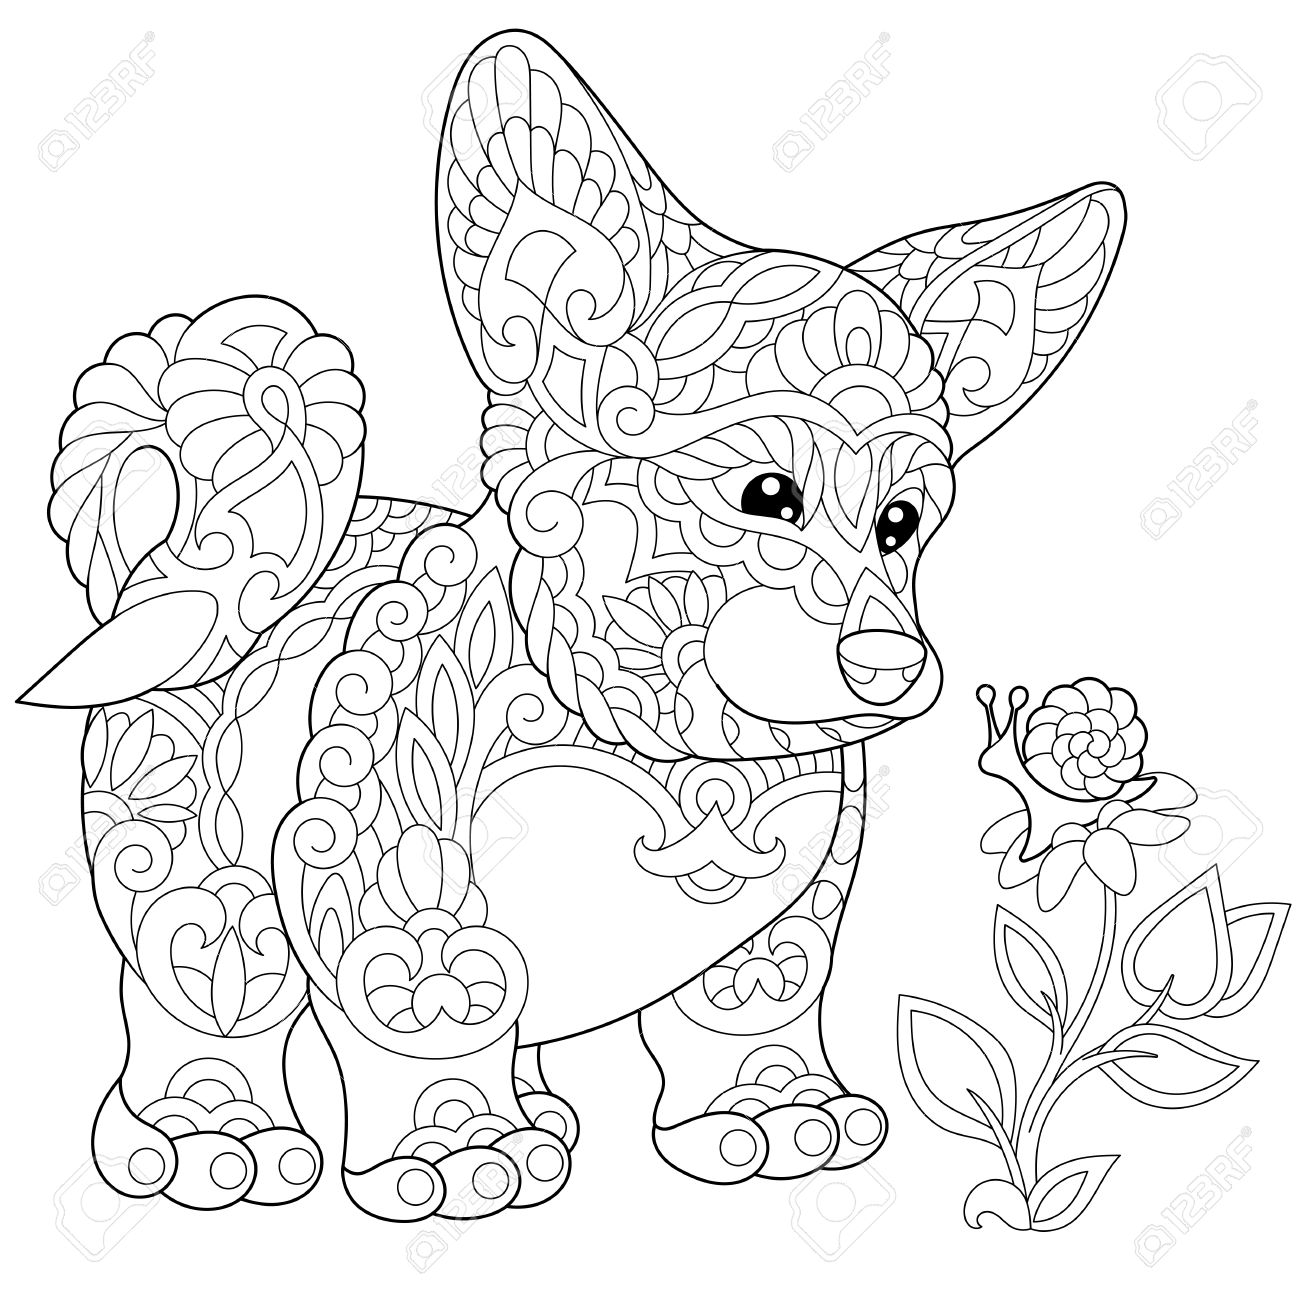 1300x1300 Coloring Page Of Cardigan Welsh Corgi Puppy. Freehand Sketch